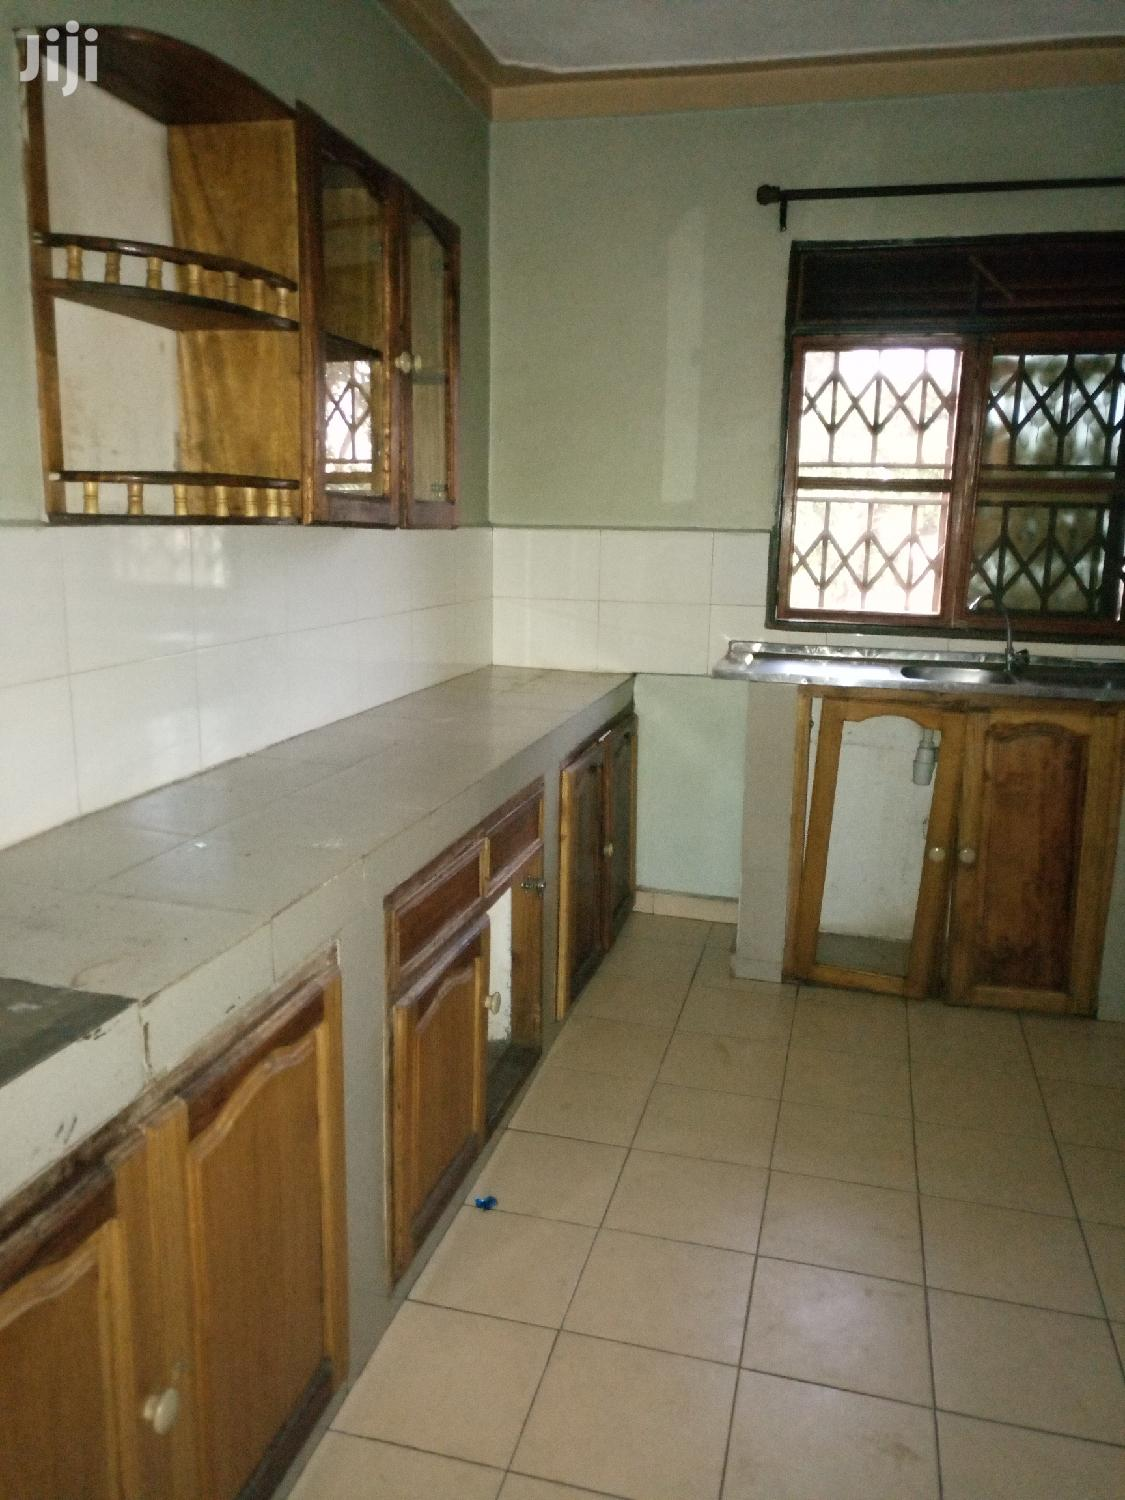 Two Bedroom Apartment In Ntinda For Rent | Houses & Apartments For Rent for sale in Kampala, Central Region, Uganda